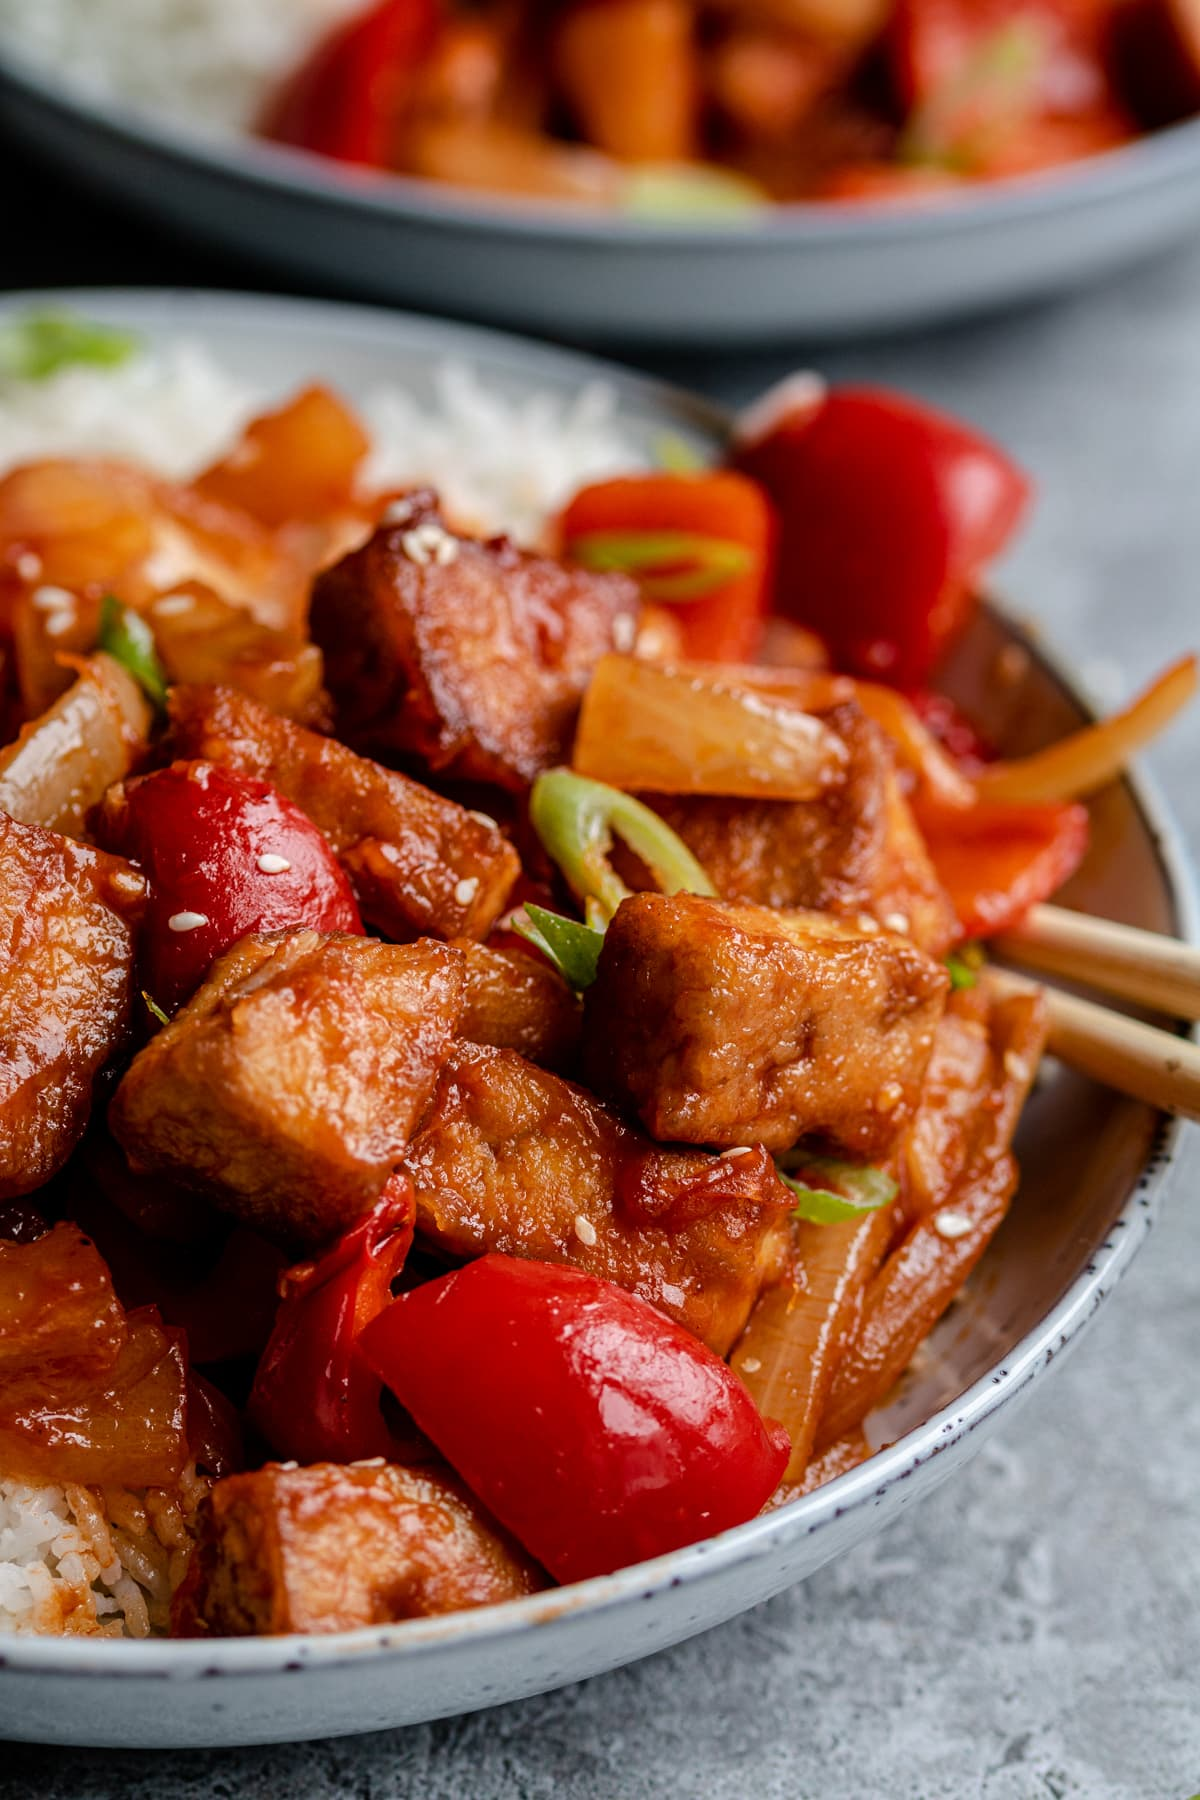 Tofu with onions, red peppers, pineapple chunks, served with white rice